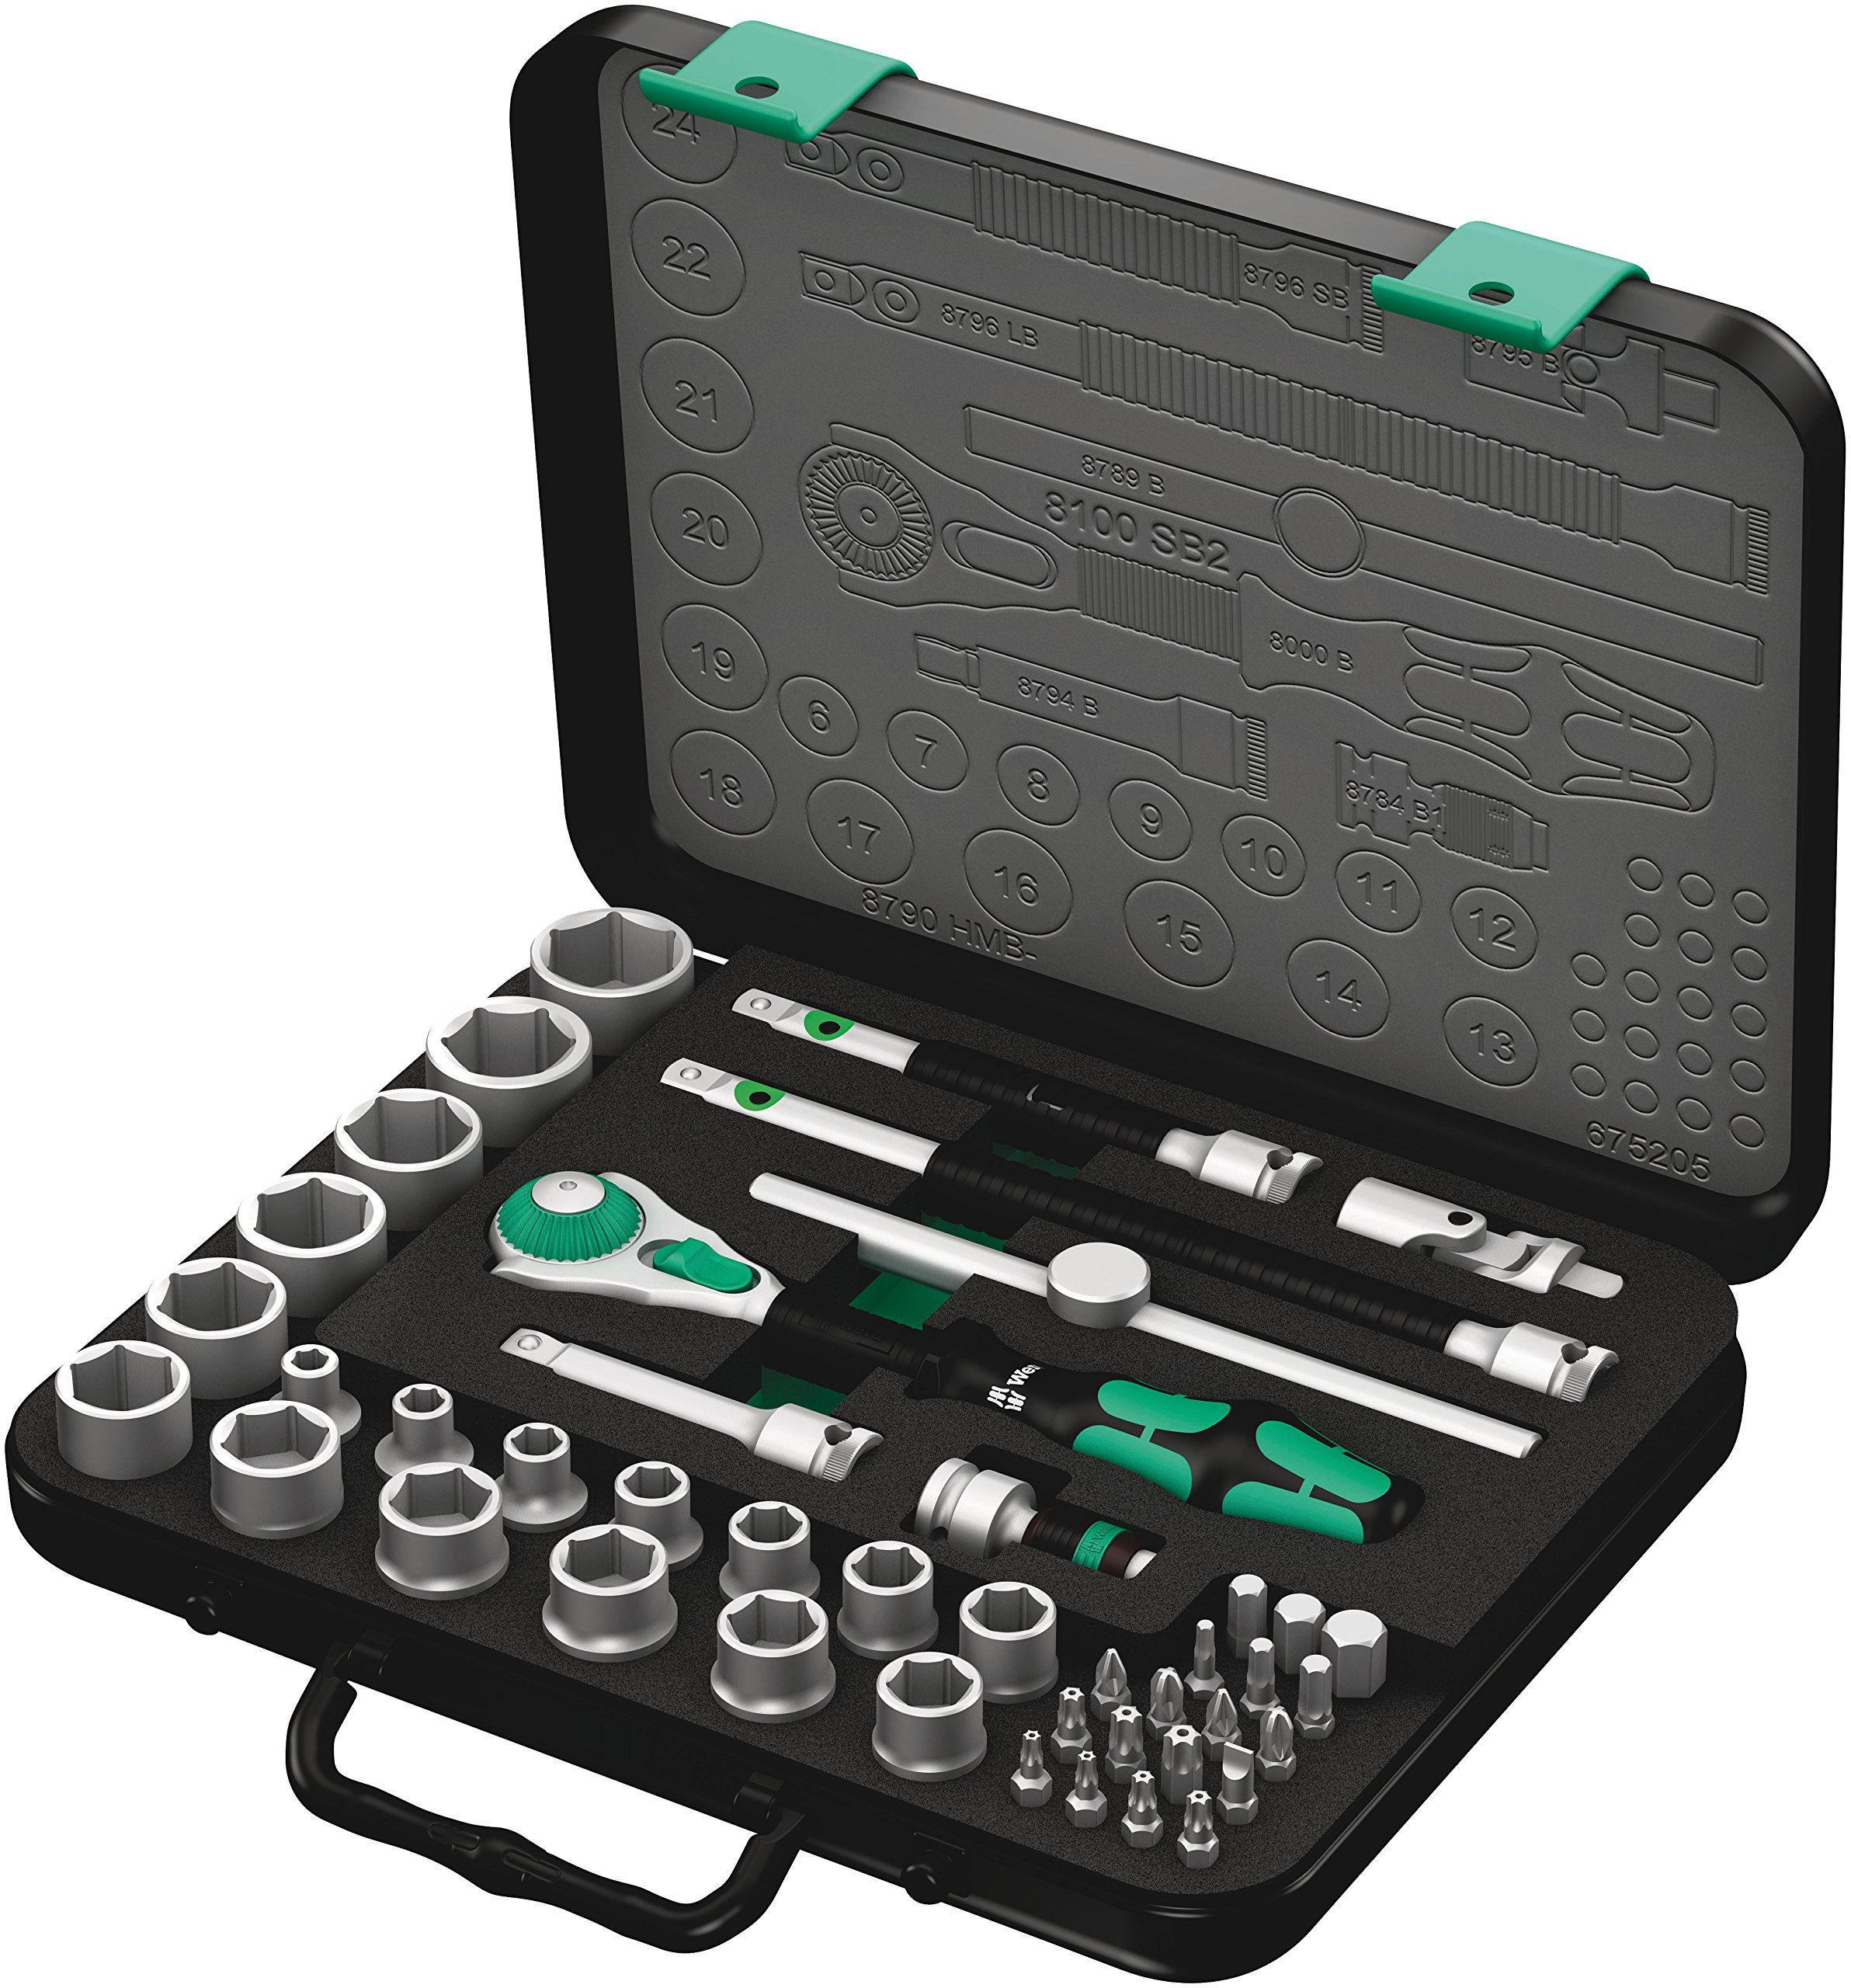 Wera 8100 SB 2 Zyklop 3/8'' Metric Ratchet Set ( Piece of 43) by Wera